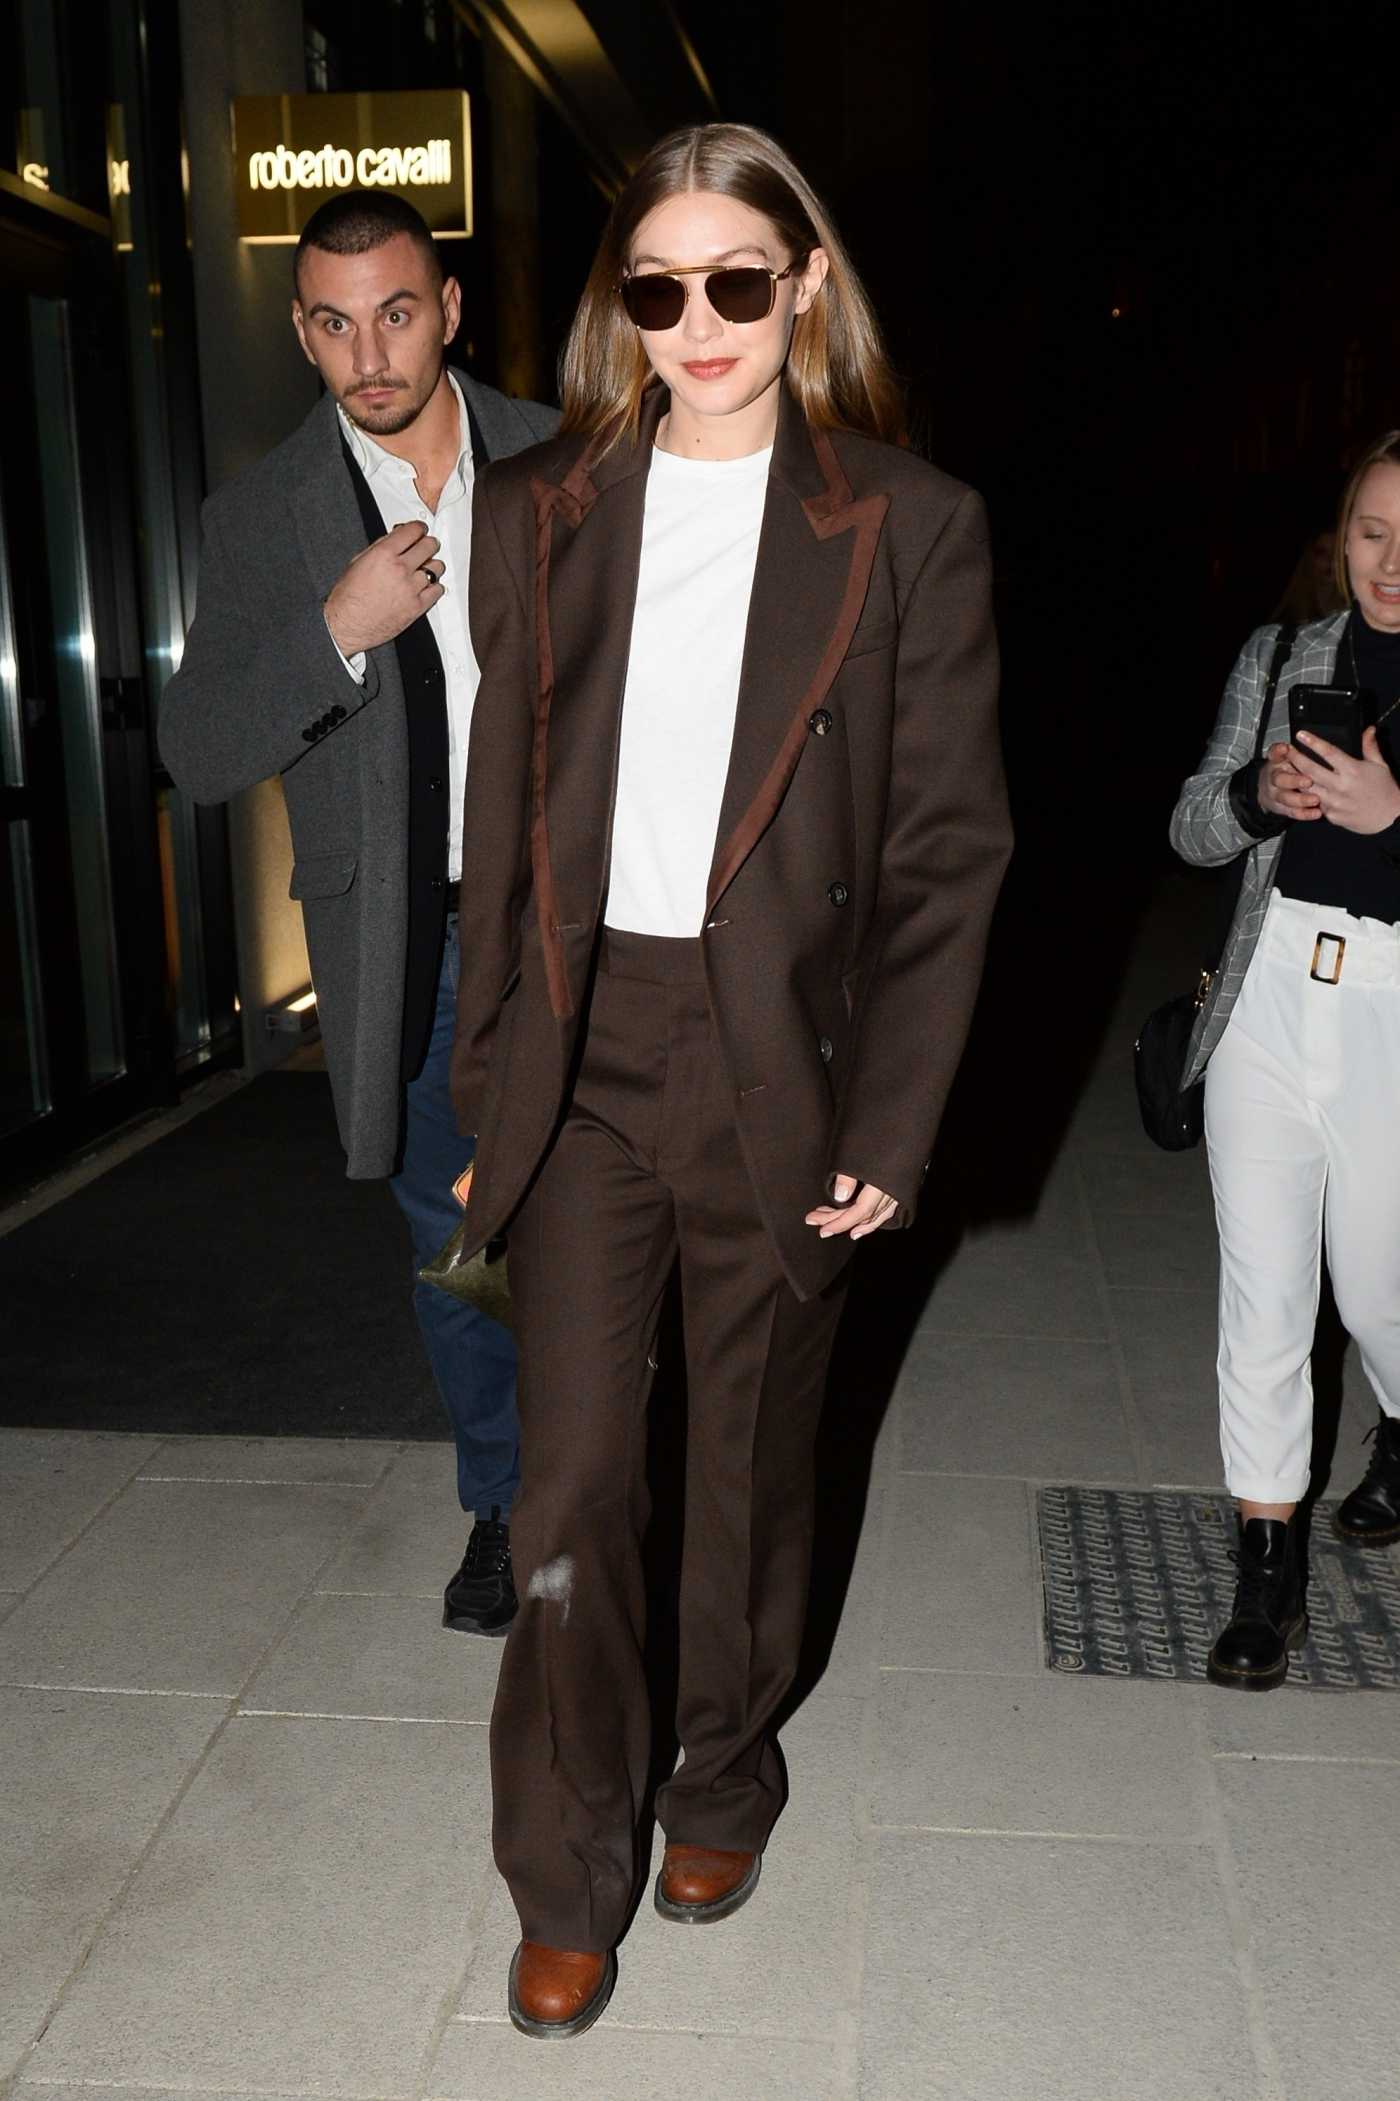 Gigi Hadid in a Brown Suit Leaves 2020 Missoni Fashion Show in Milan 02/22/2020